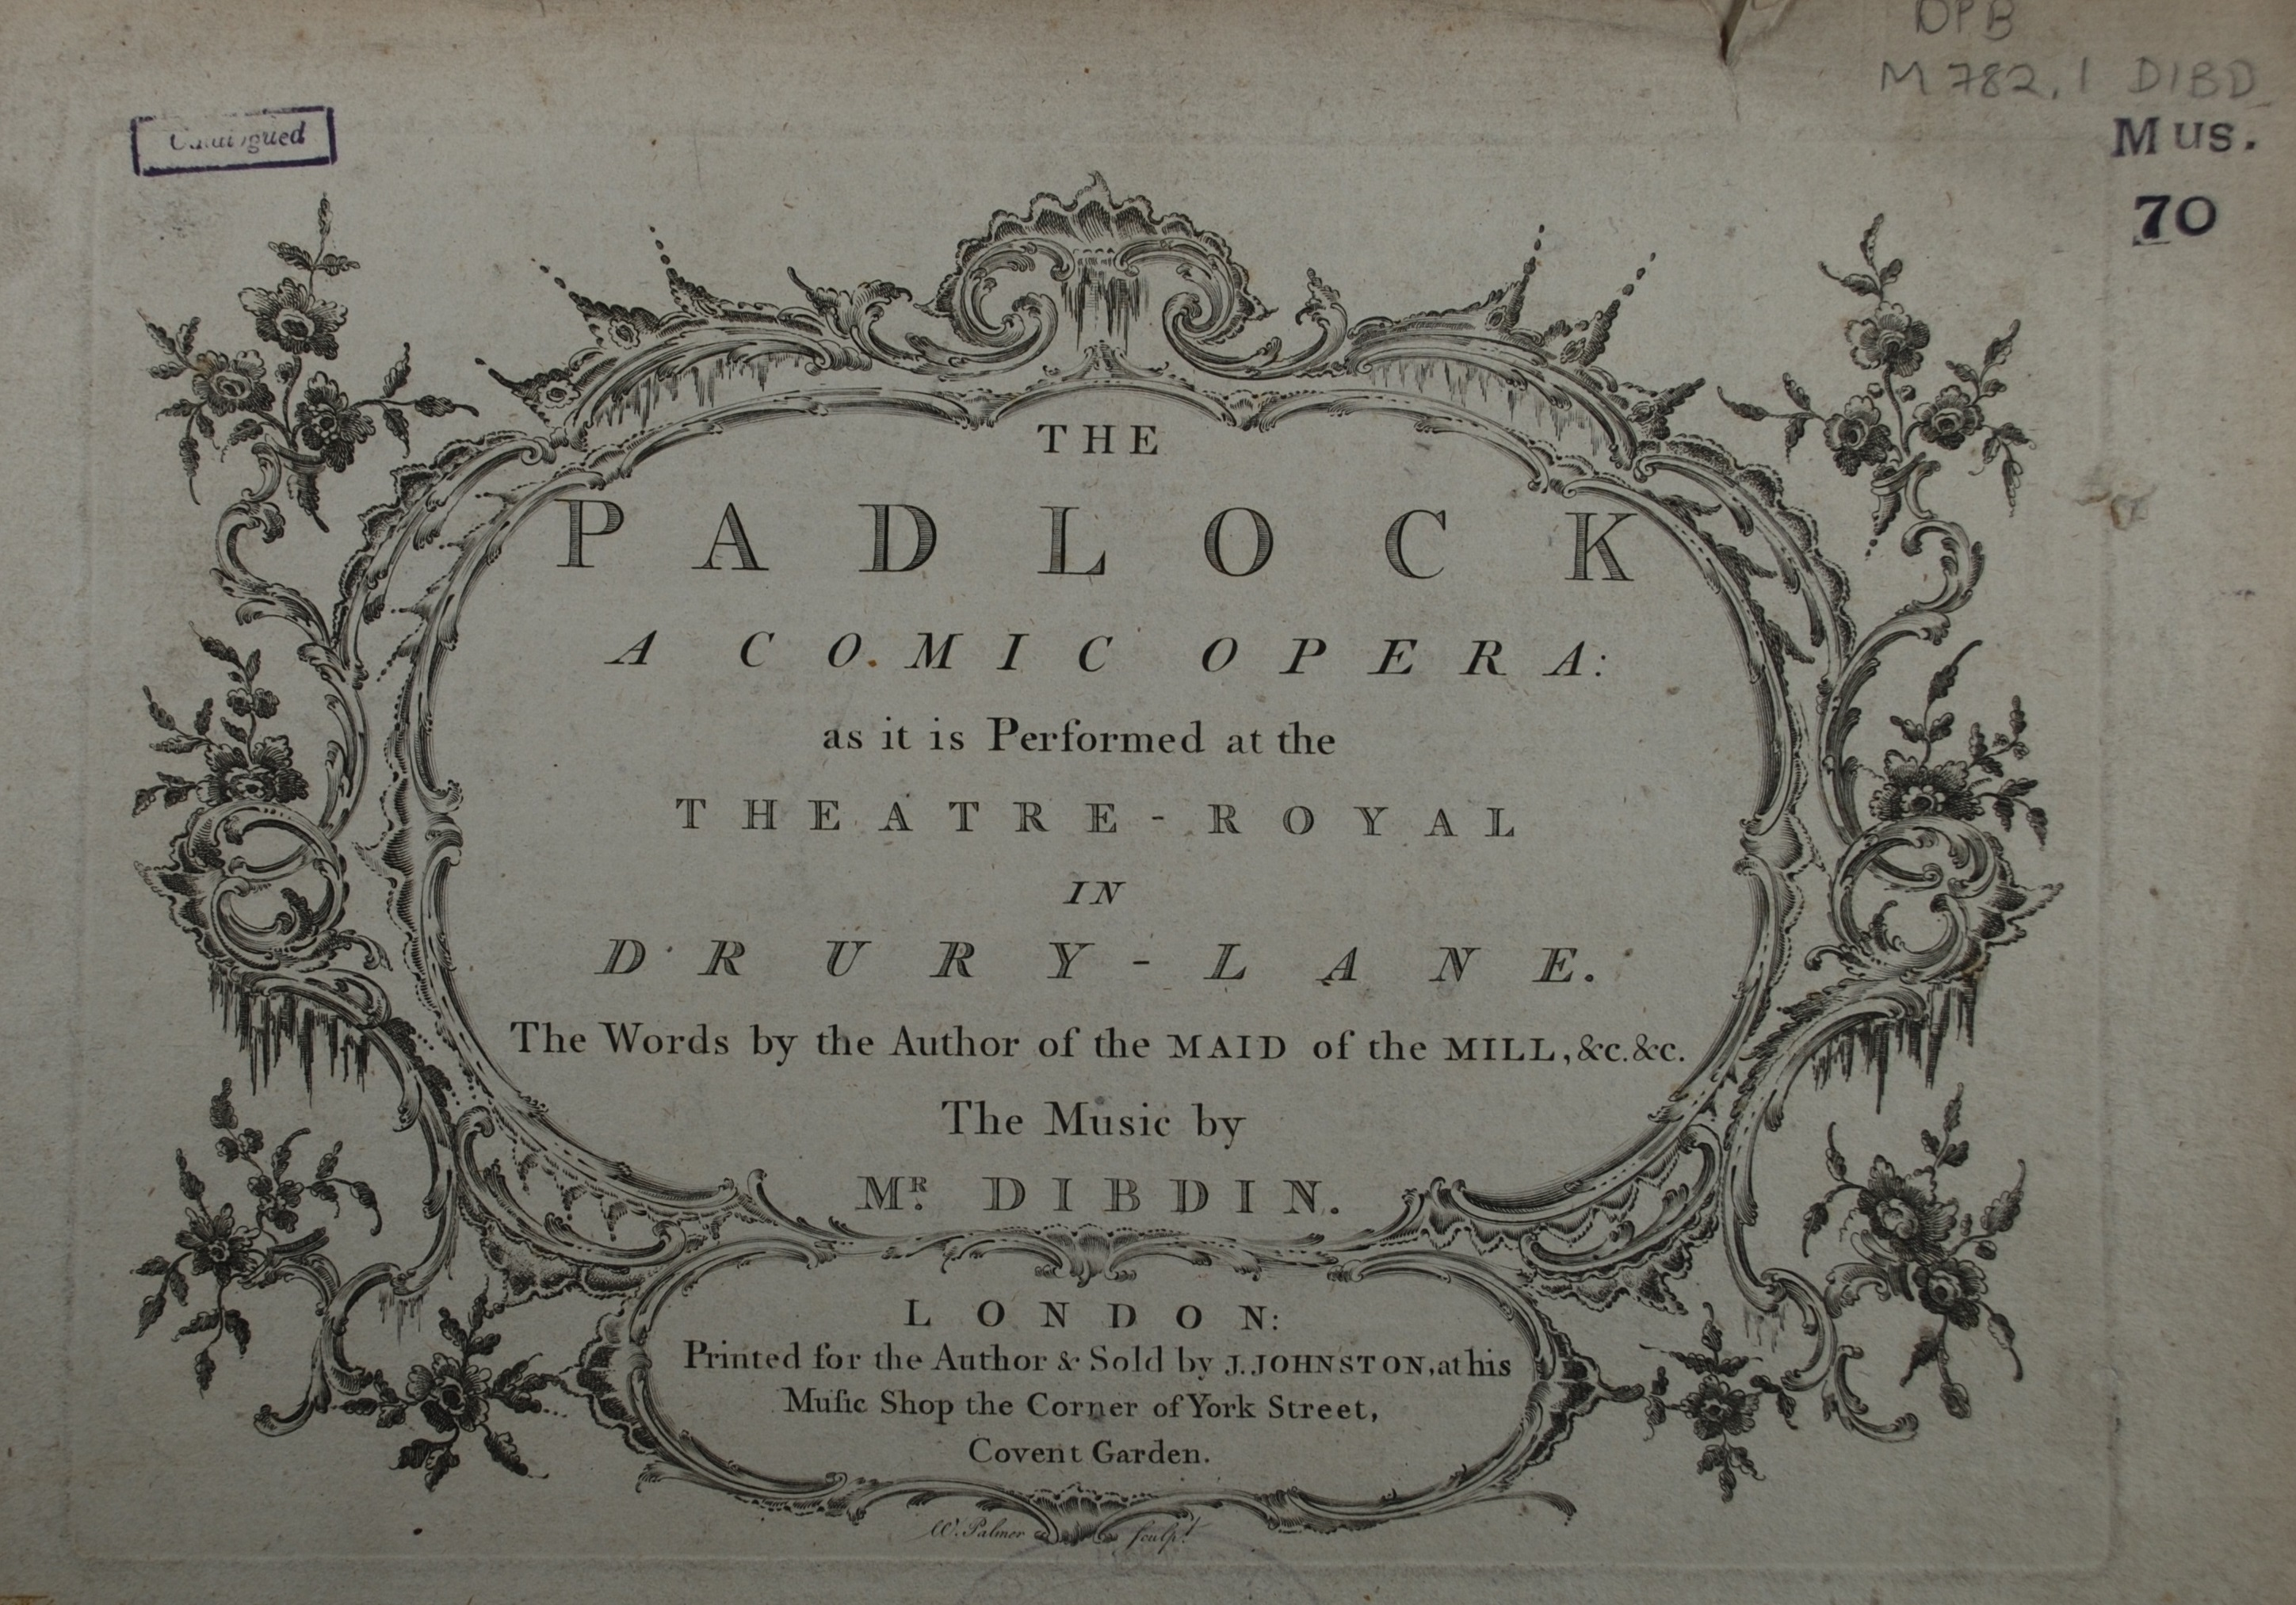 Title page of The Padlock.